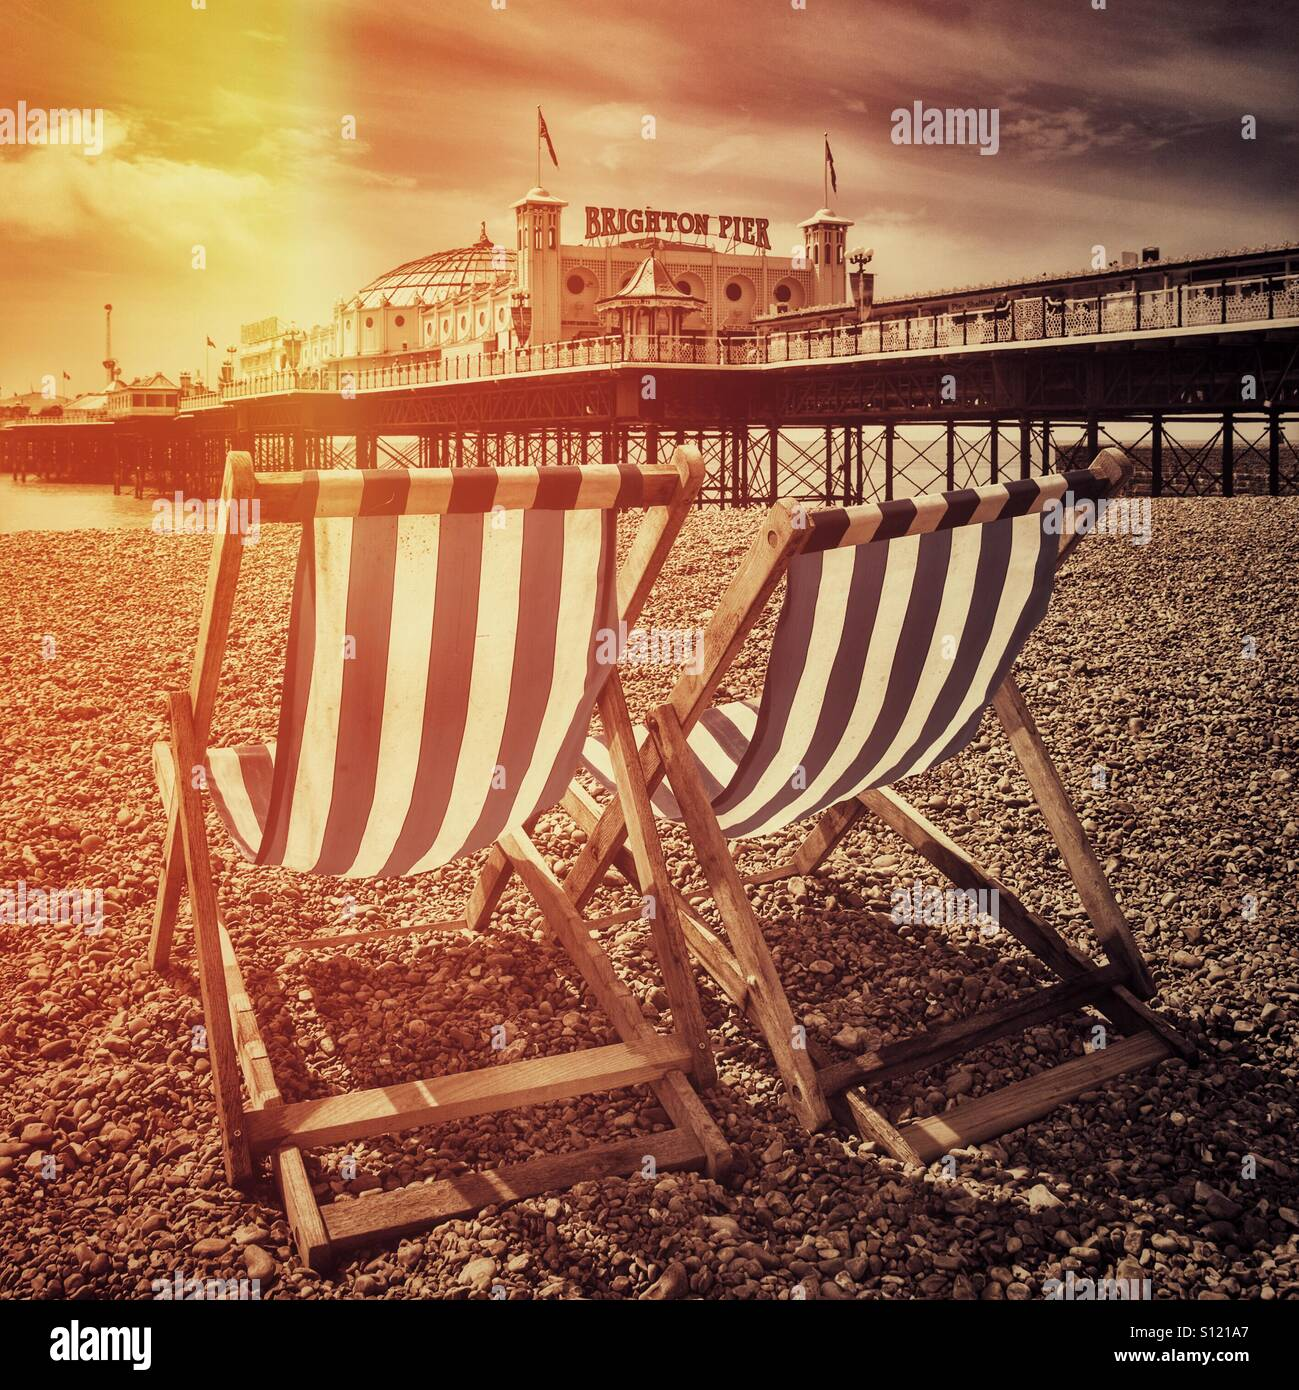 Deckchairs on brighton beach - Stock Image